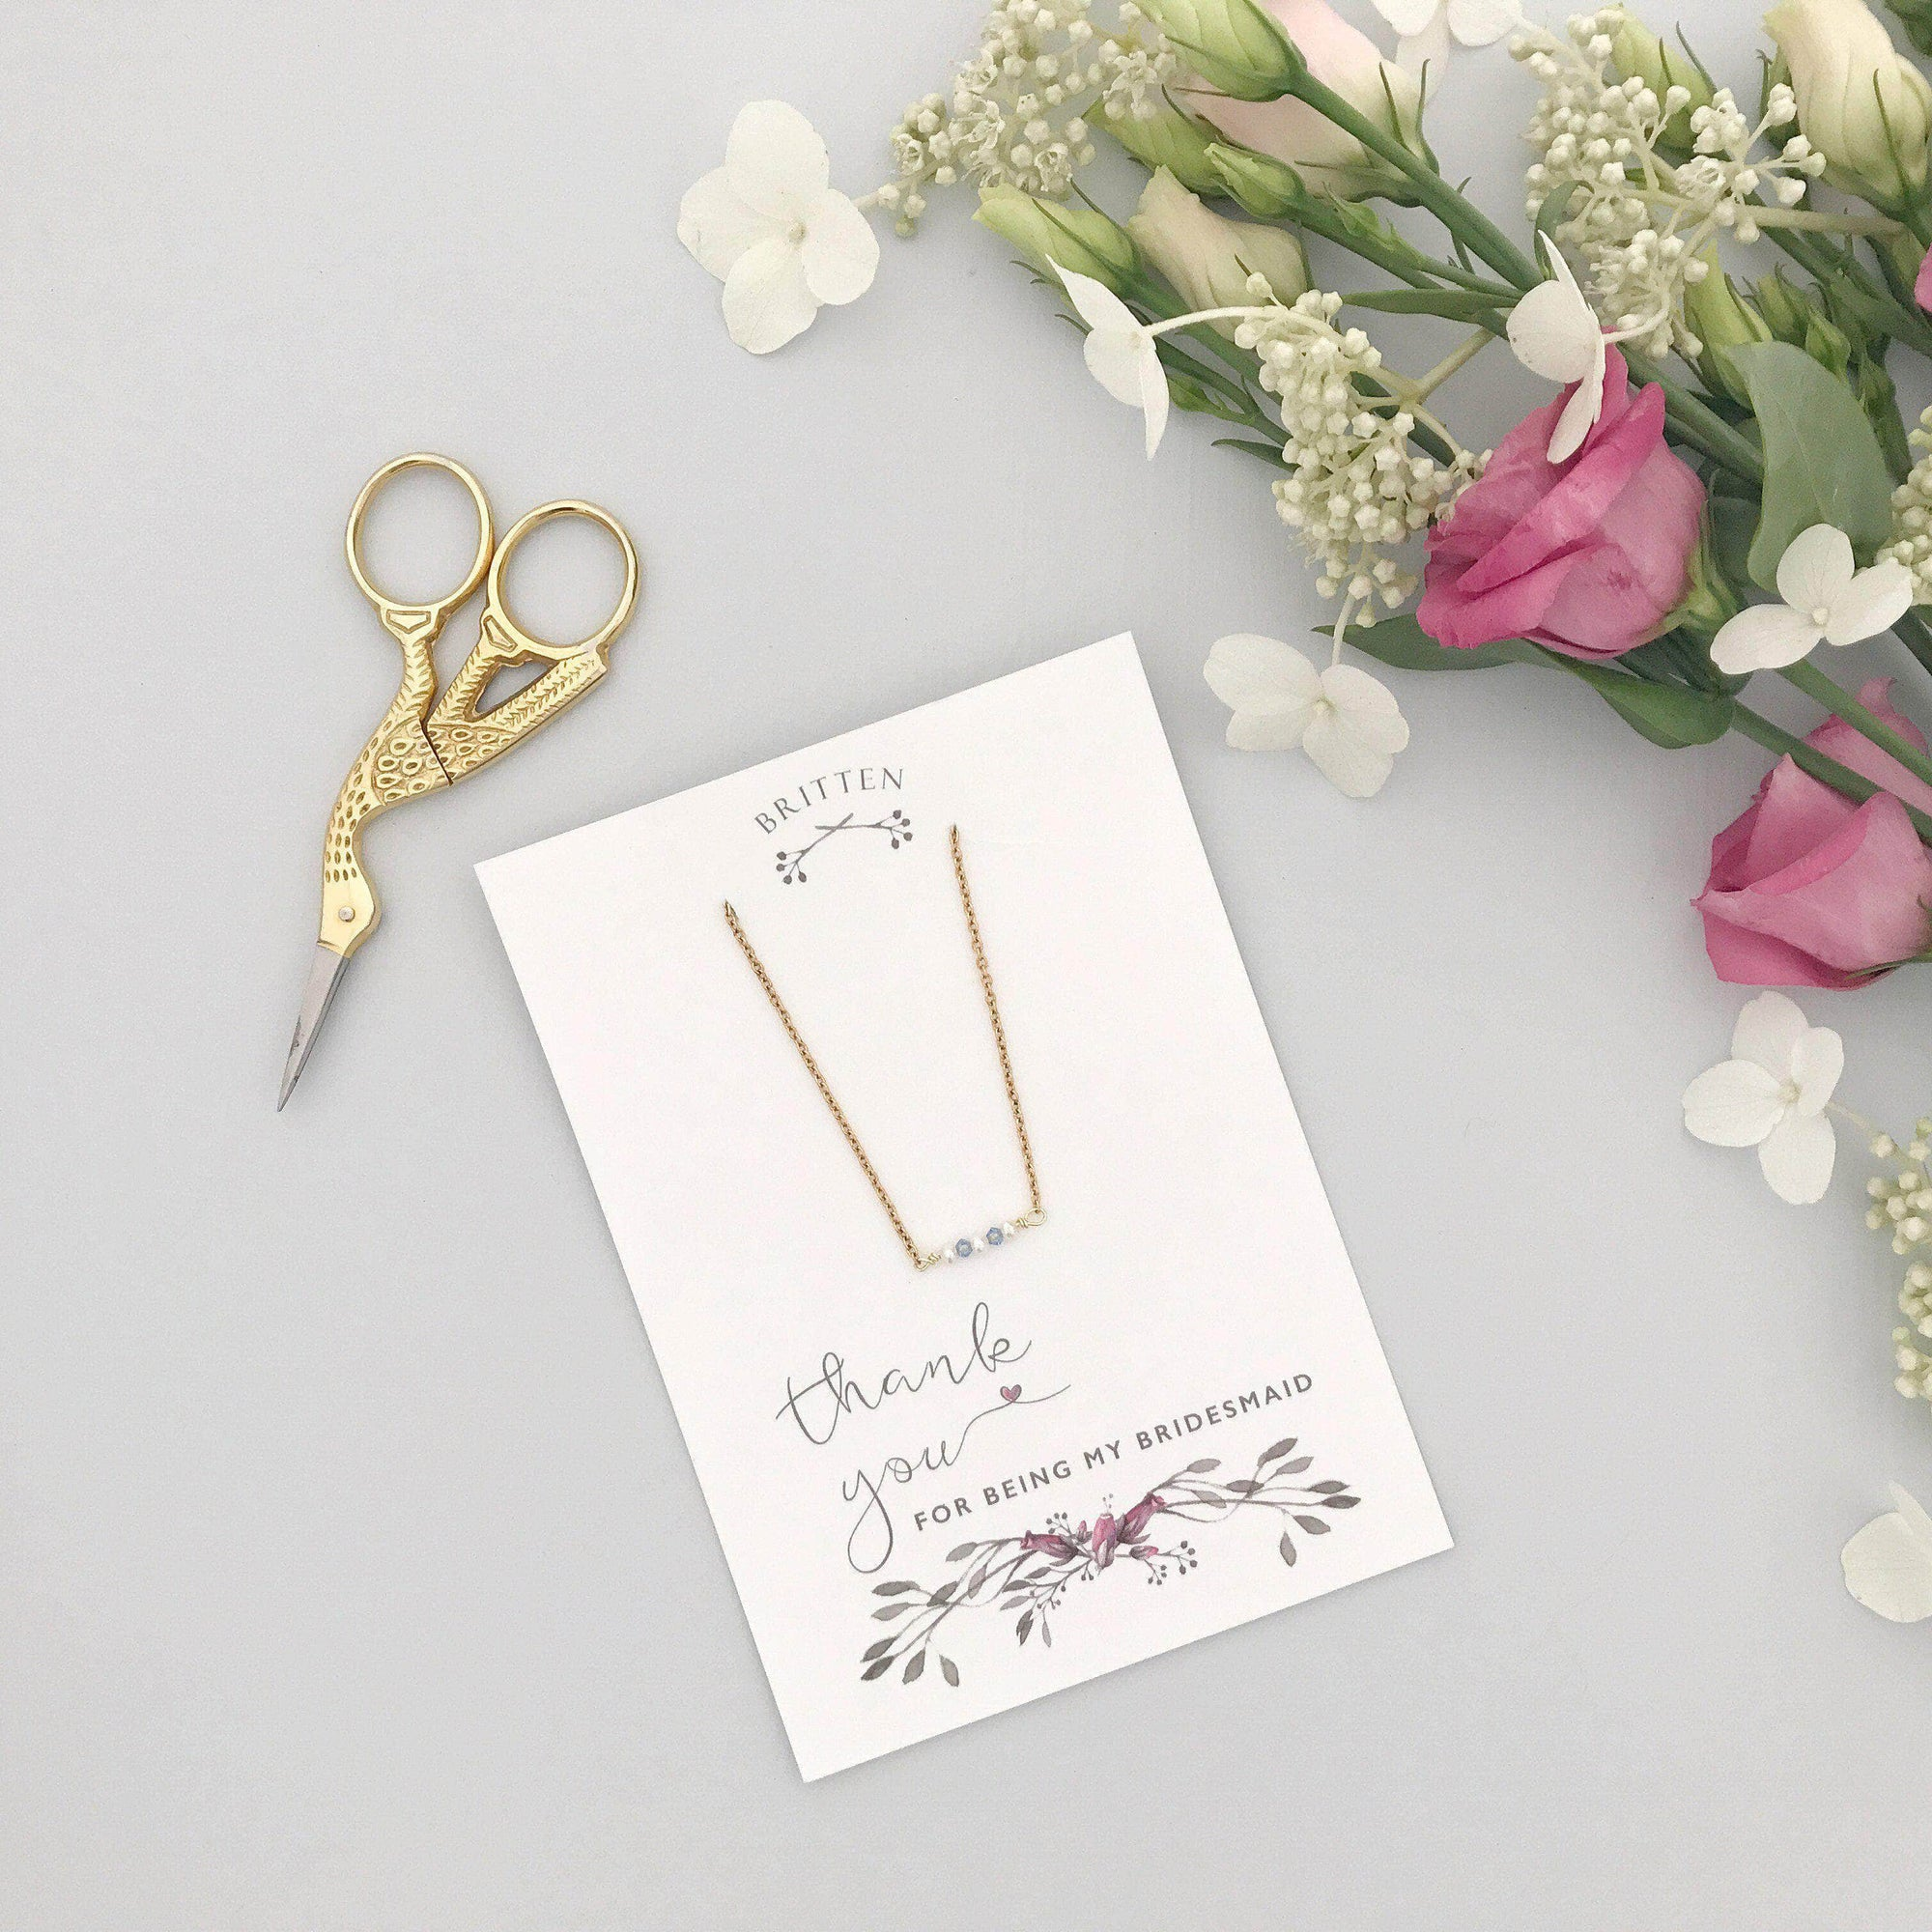 Bridesmaid Gift Gold Bridesmaid 'thank you' gift necklace - 'Mollie' in gold